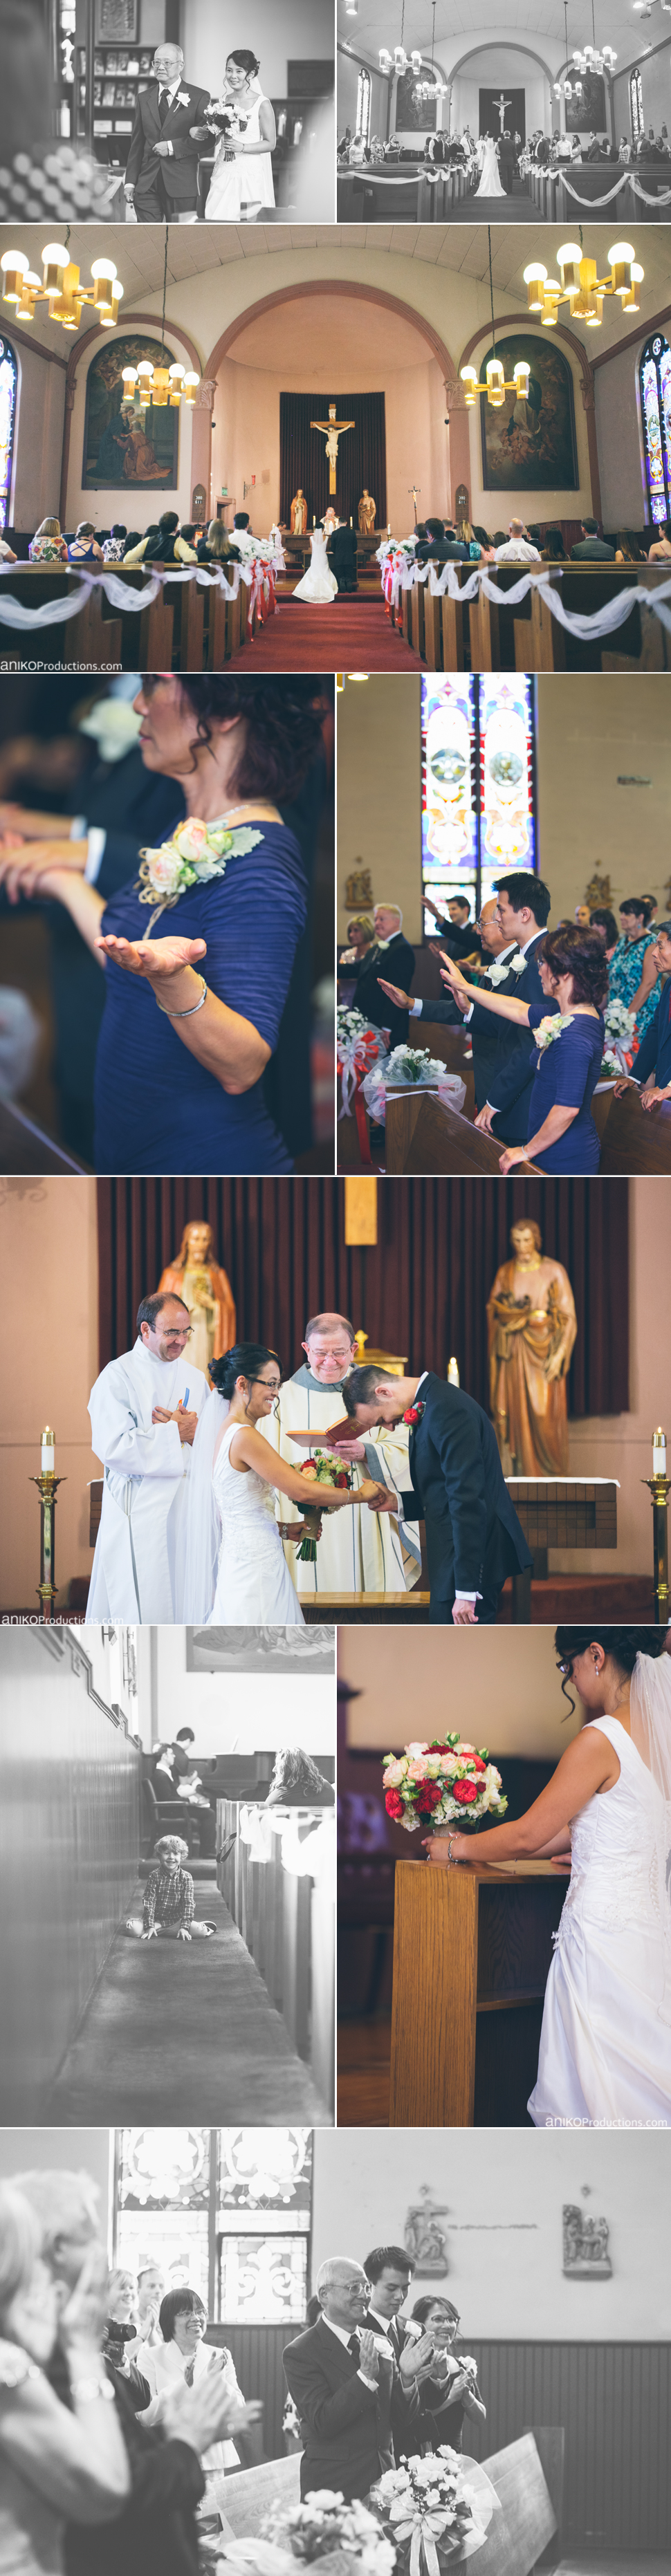 portland-oregon-wedding-photos-downtown-catholic-church8